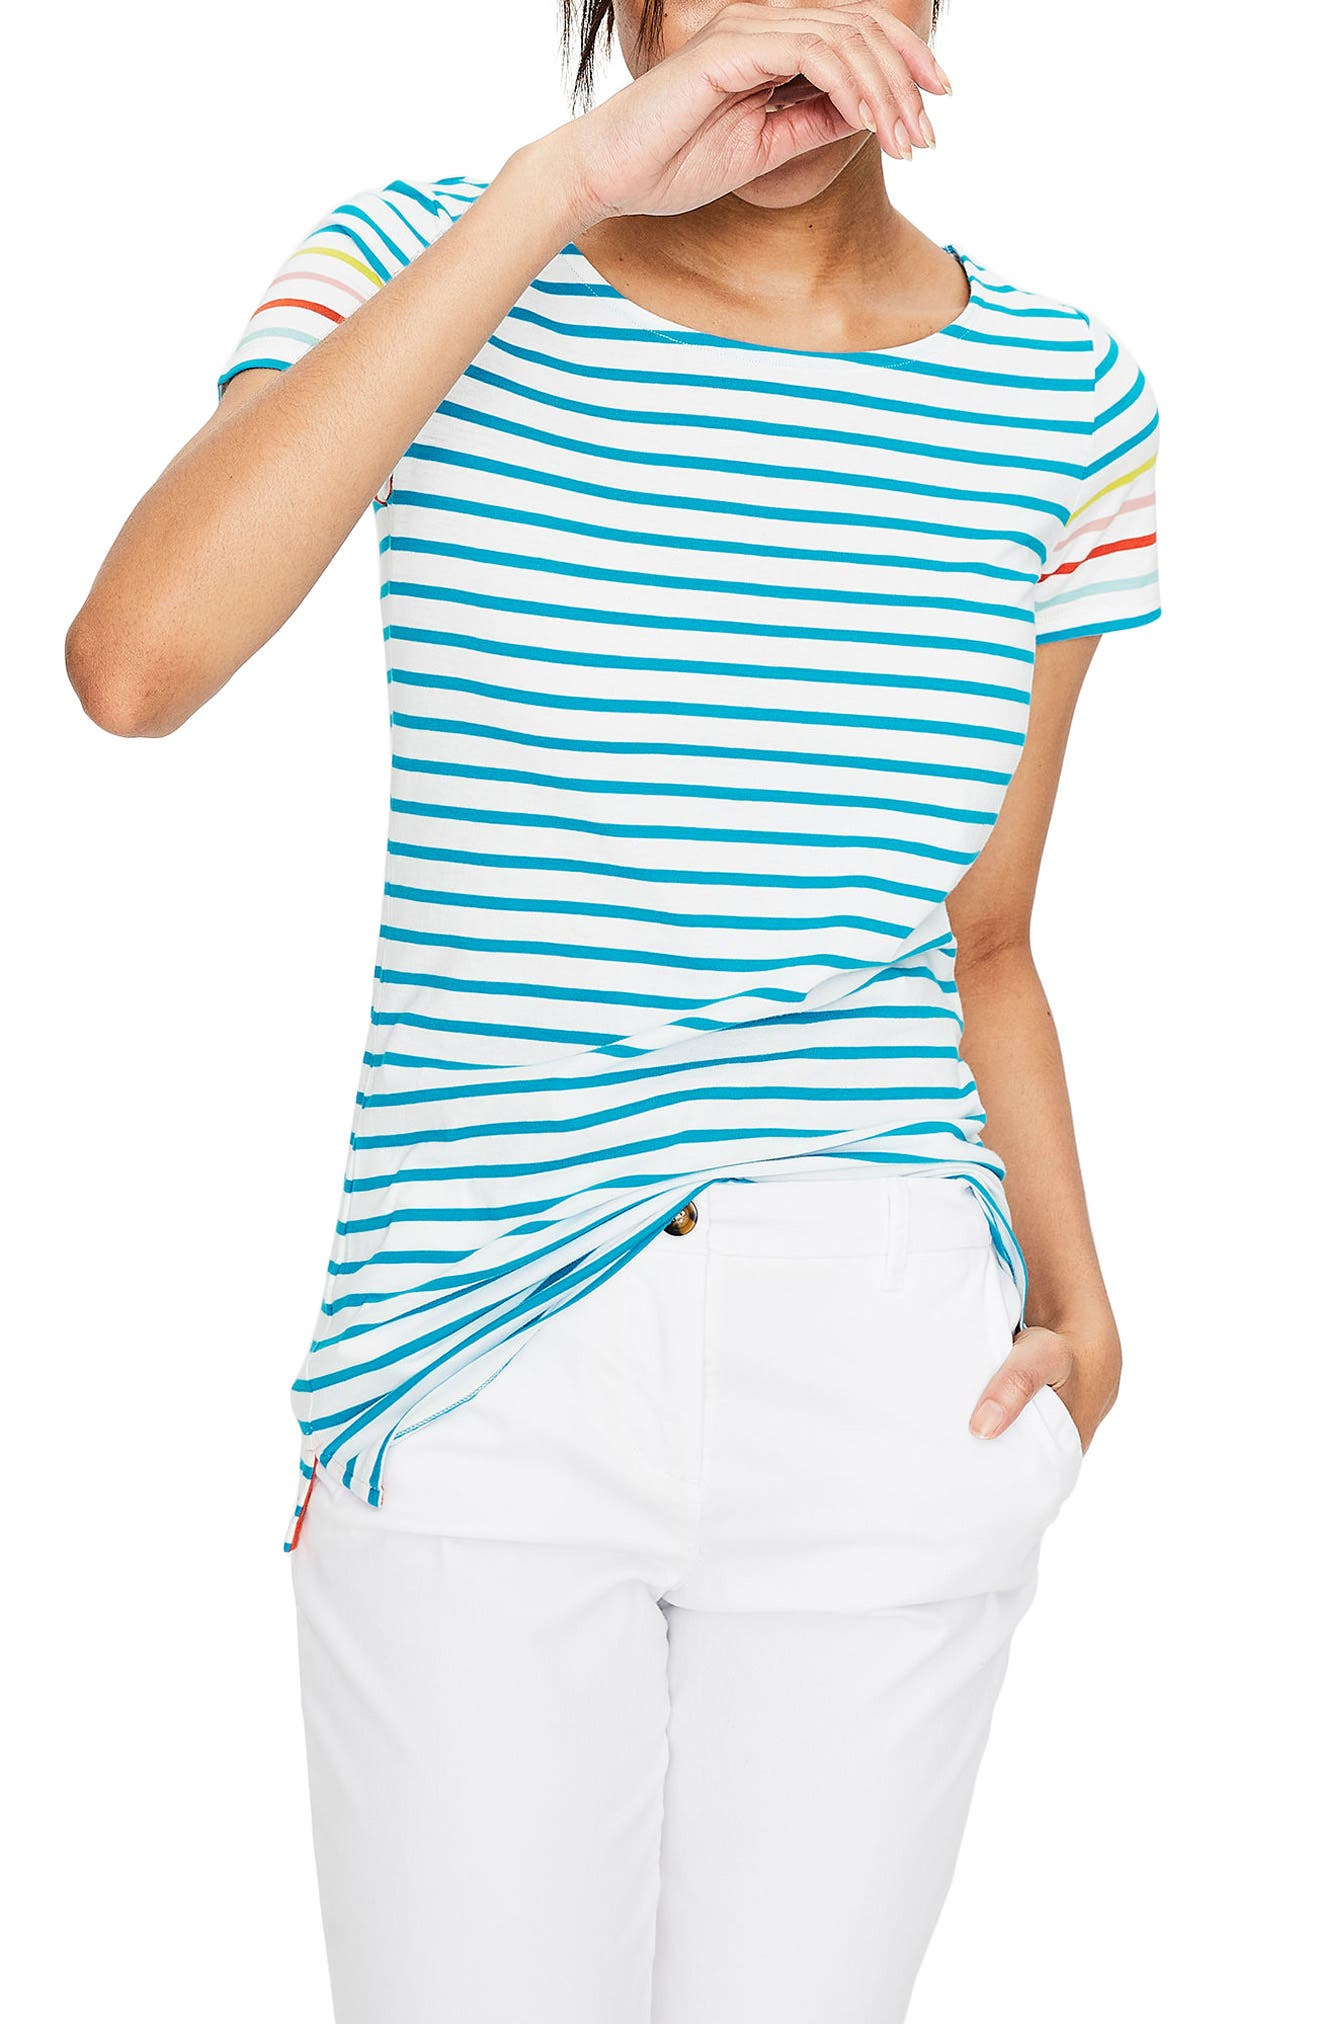 Breton Short Sleeve Stripe Cotton Top,                             Main thumbnail 1, color,                             454